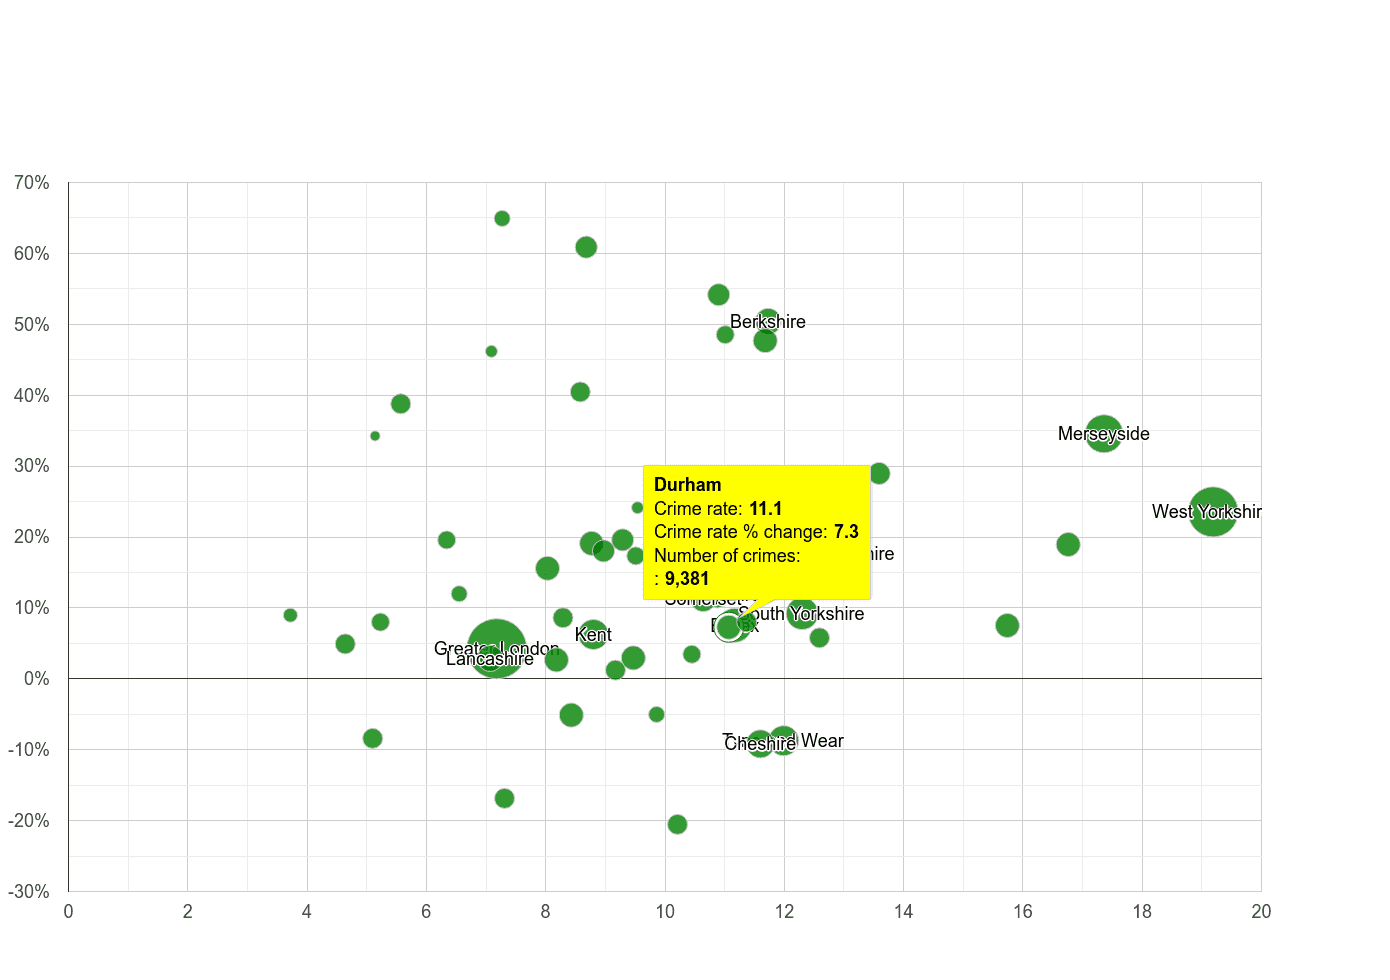 Durham county public order crime rate compared to other counties